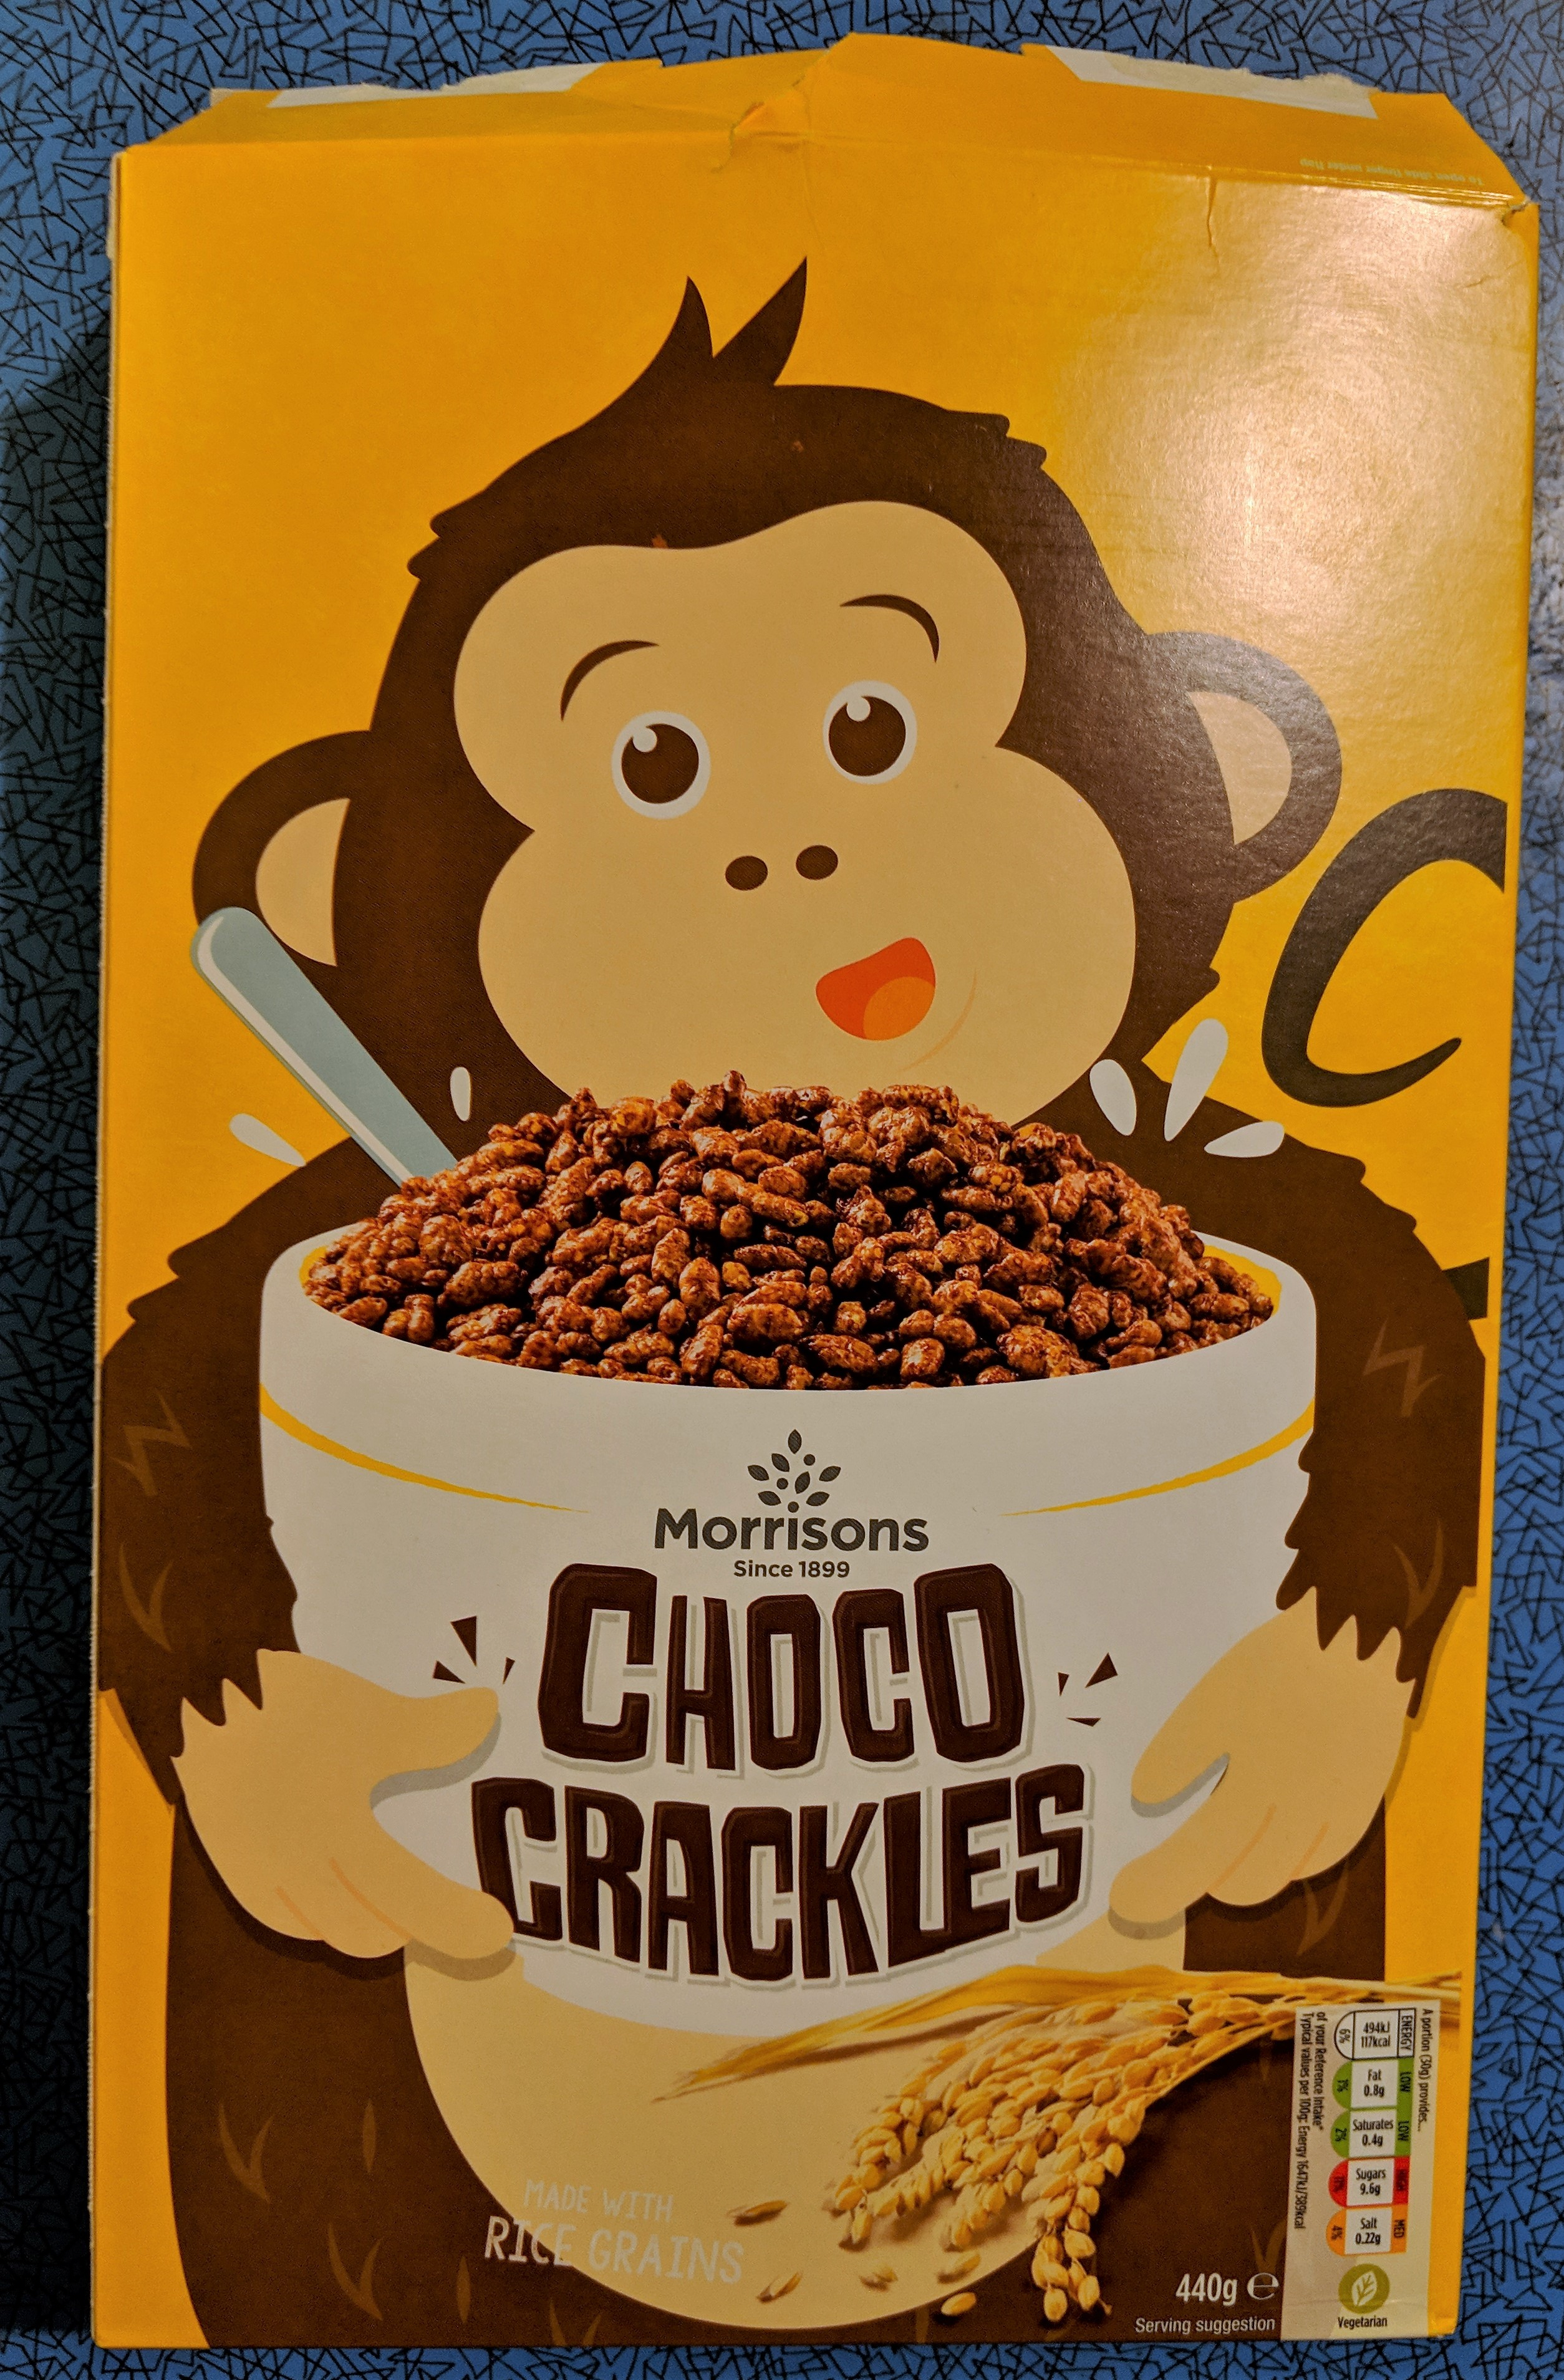 Choco Crackles